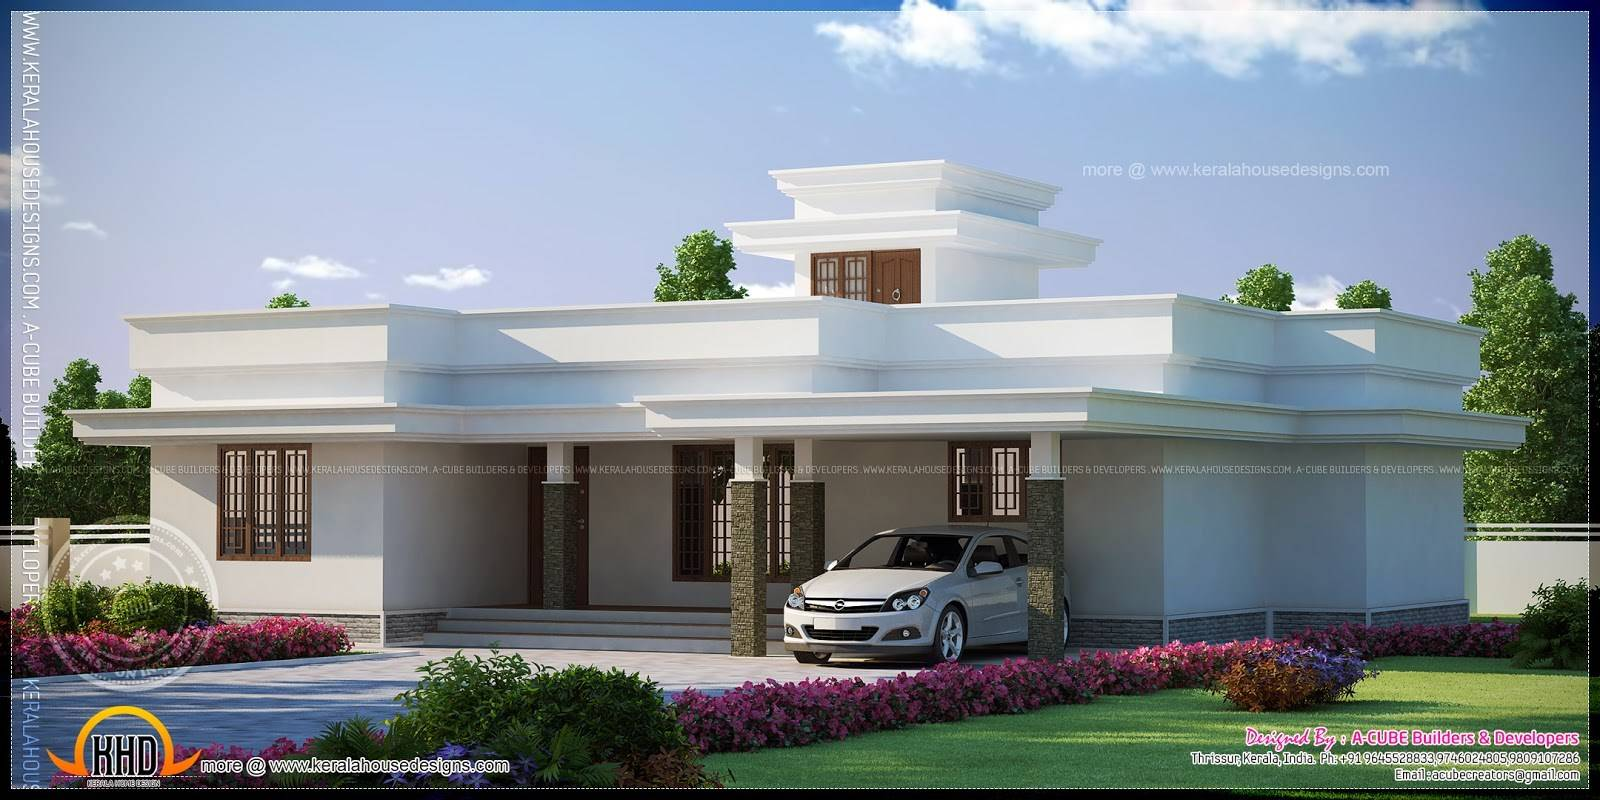 Flat Roof House Plans Designs Single Storey Houses House Plans 115048